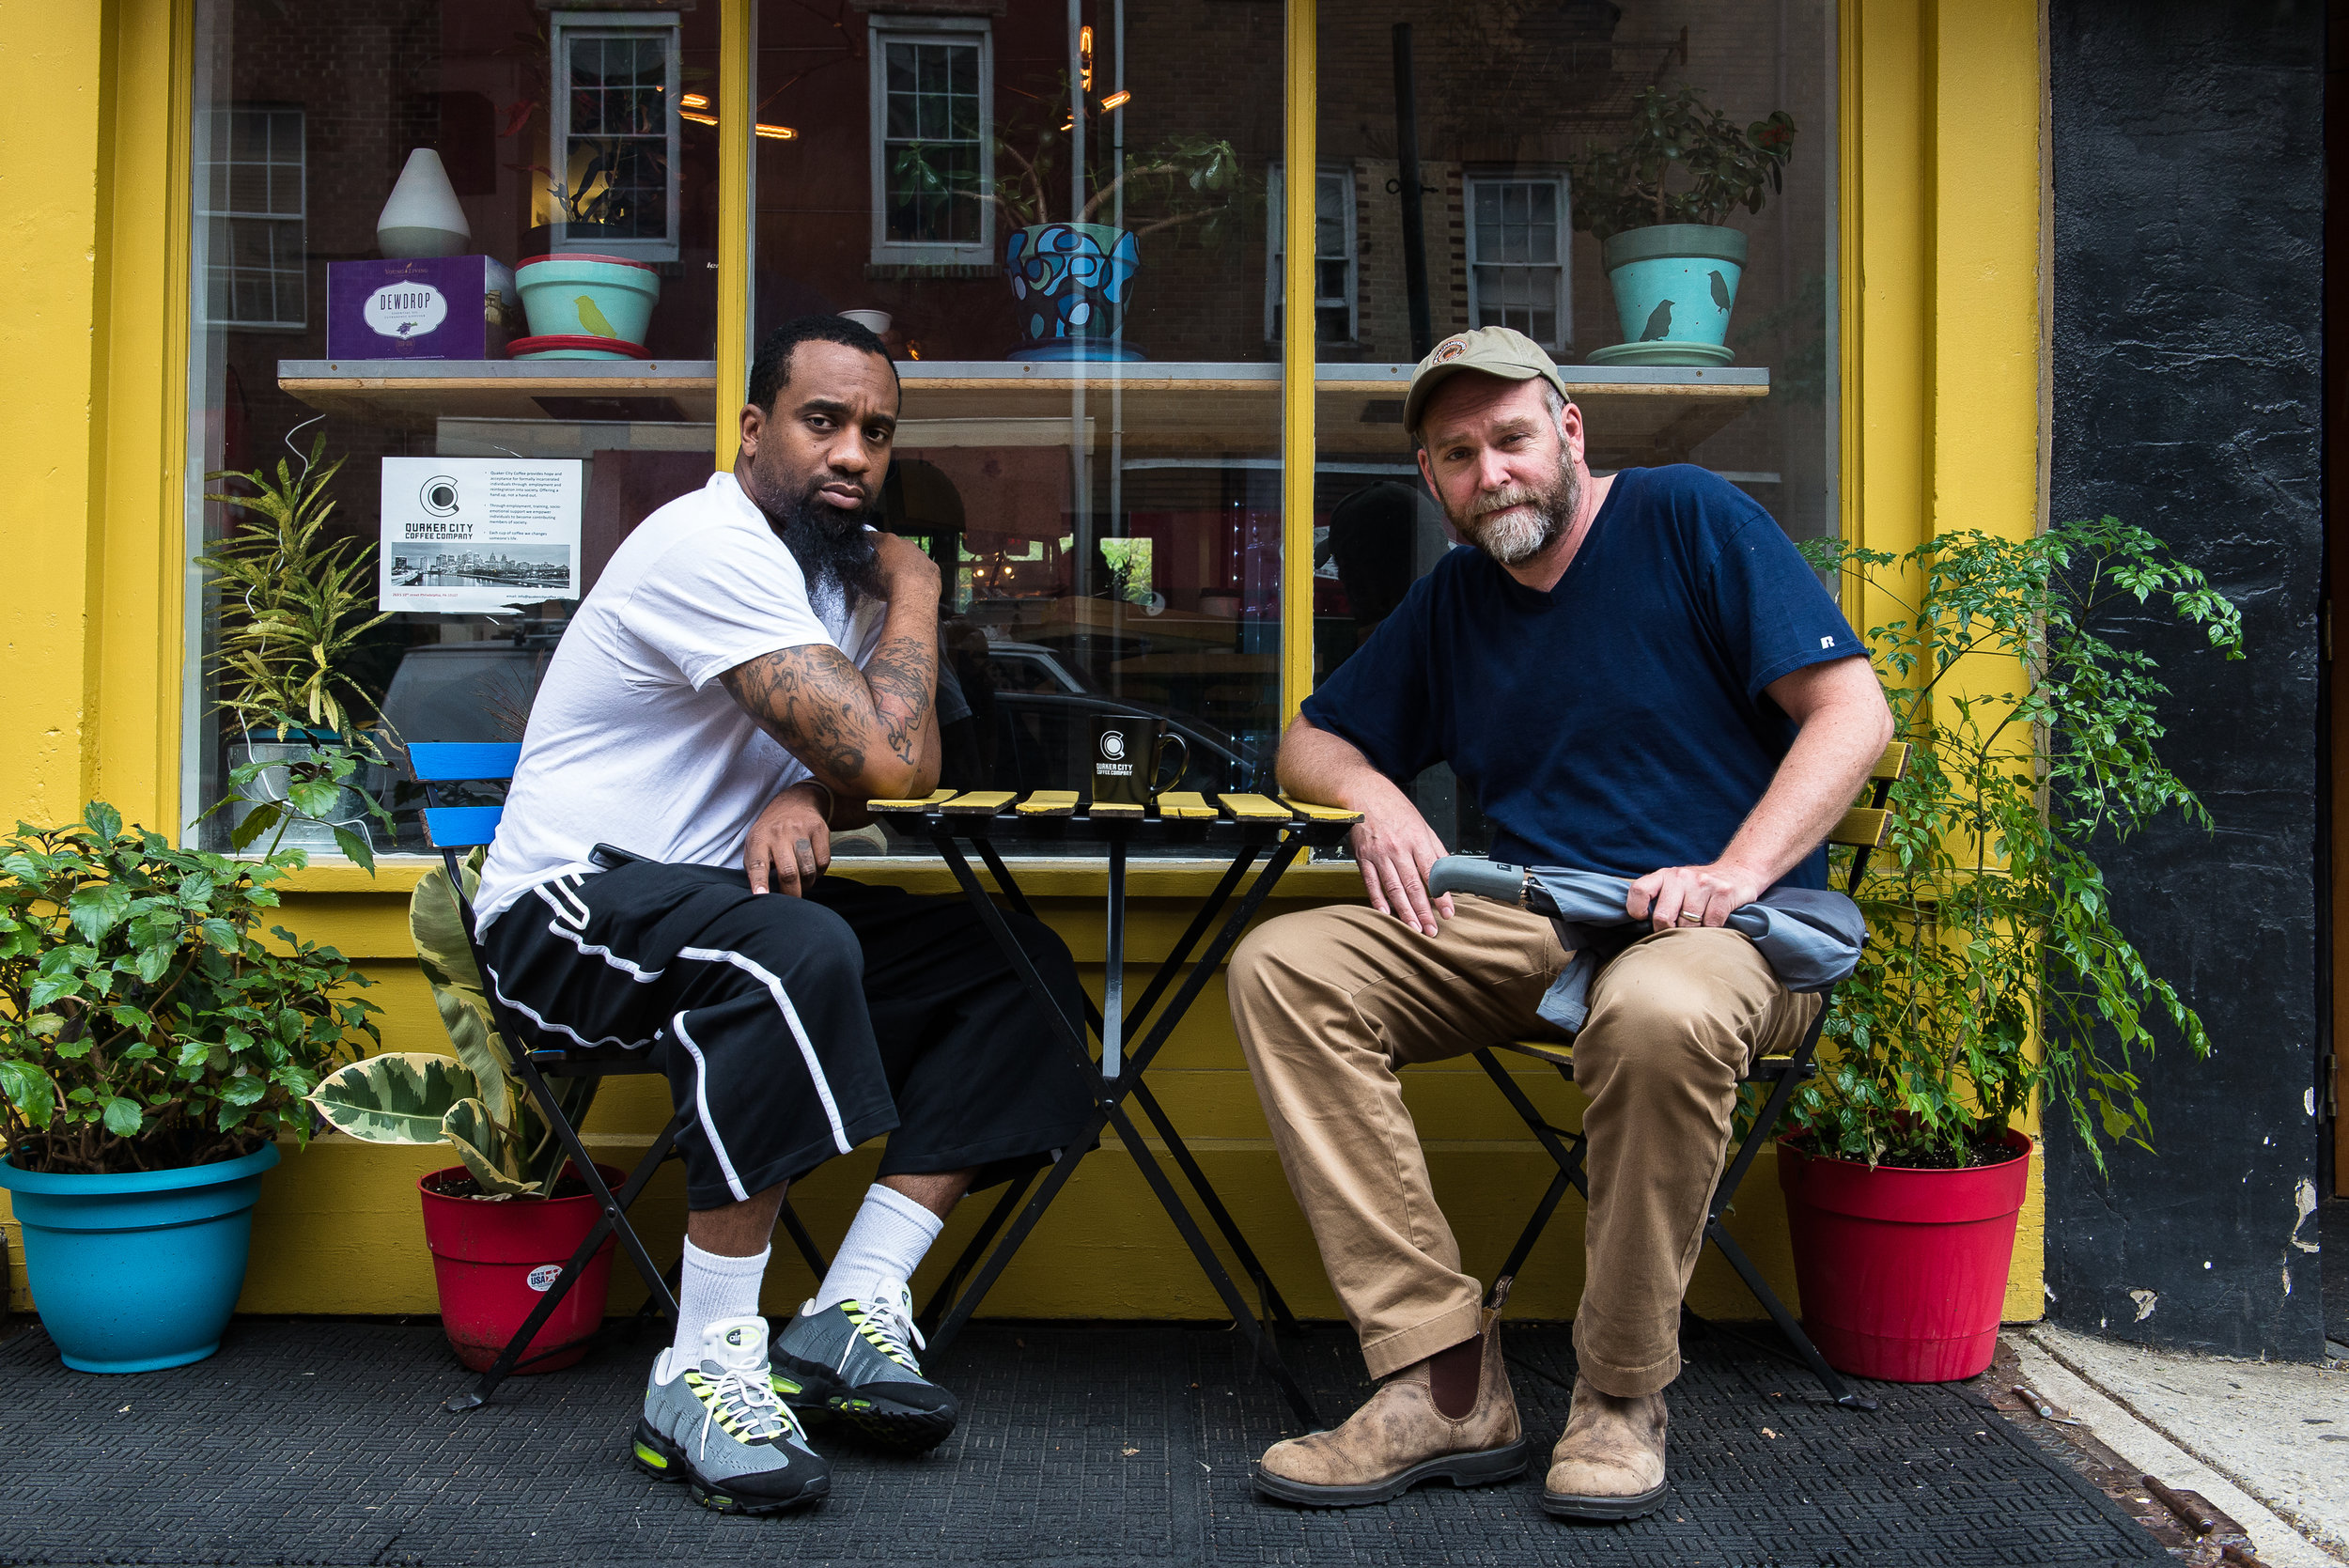 Christian Dennis and Bob Logue, co-owners of Quaker City Coffee, sit outside their coffee shop in Philadelphia